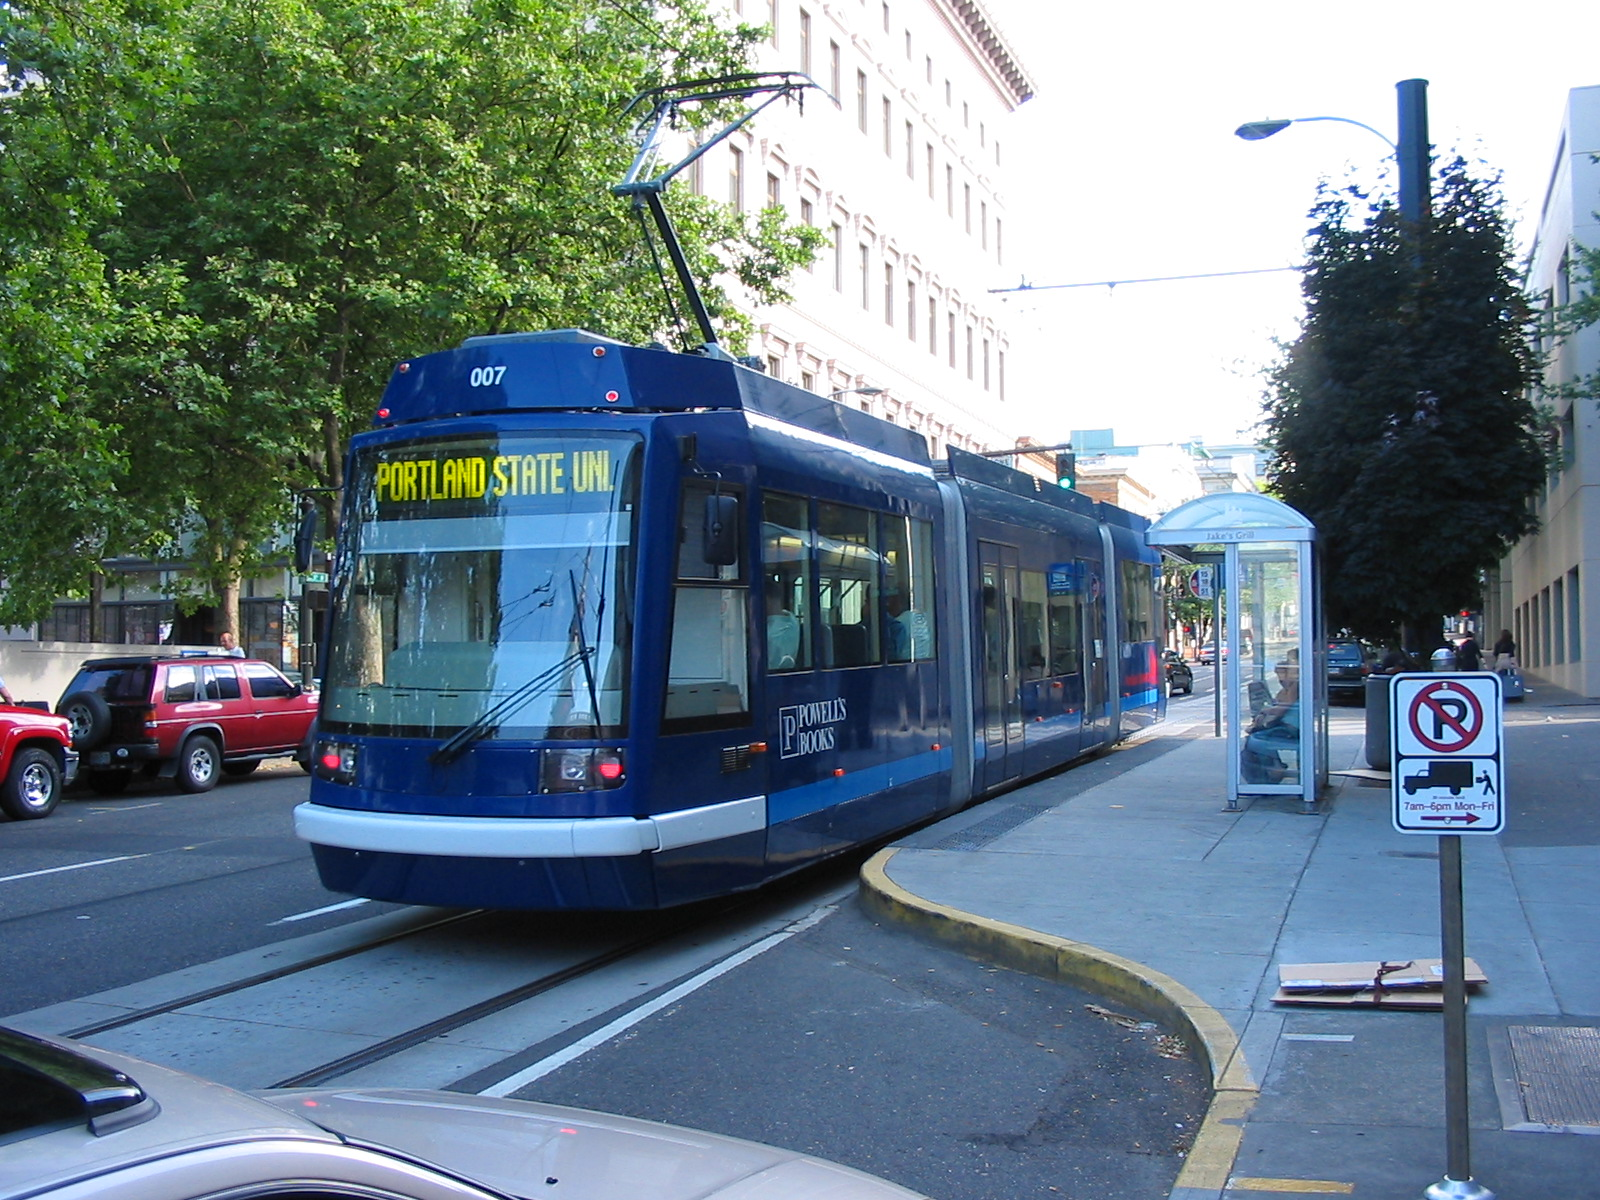 Color-coded streetcars would make the system both attractive and easy to use